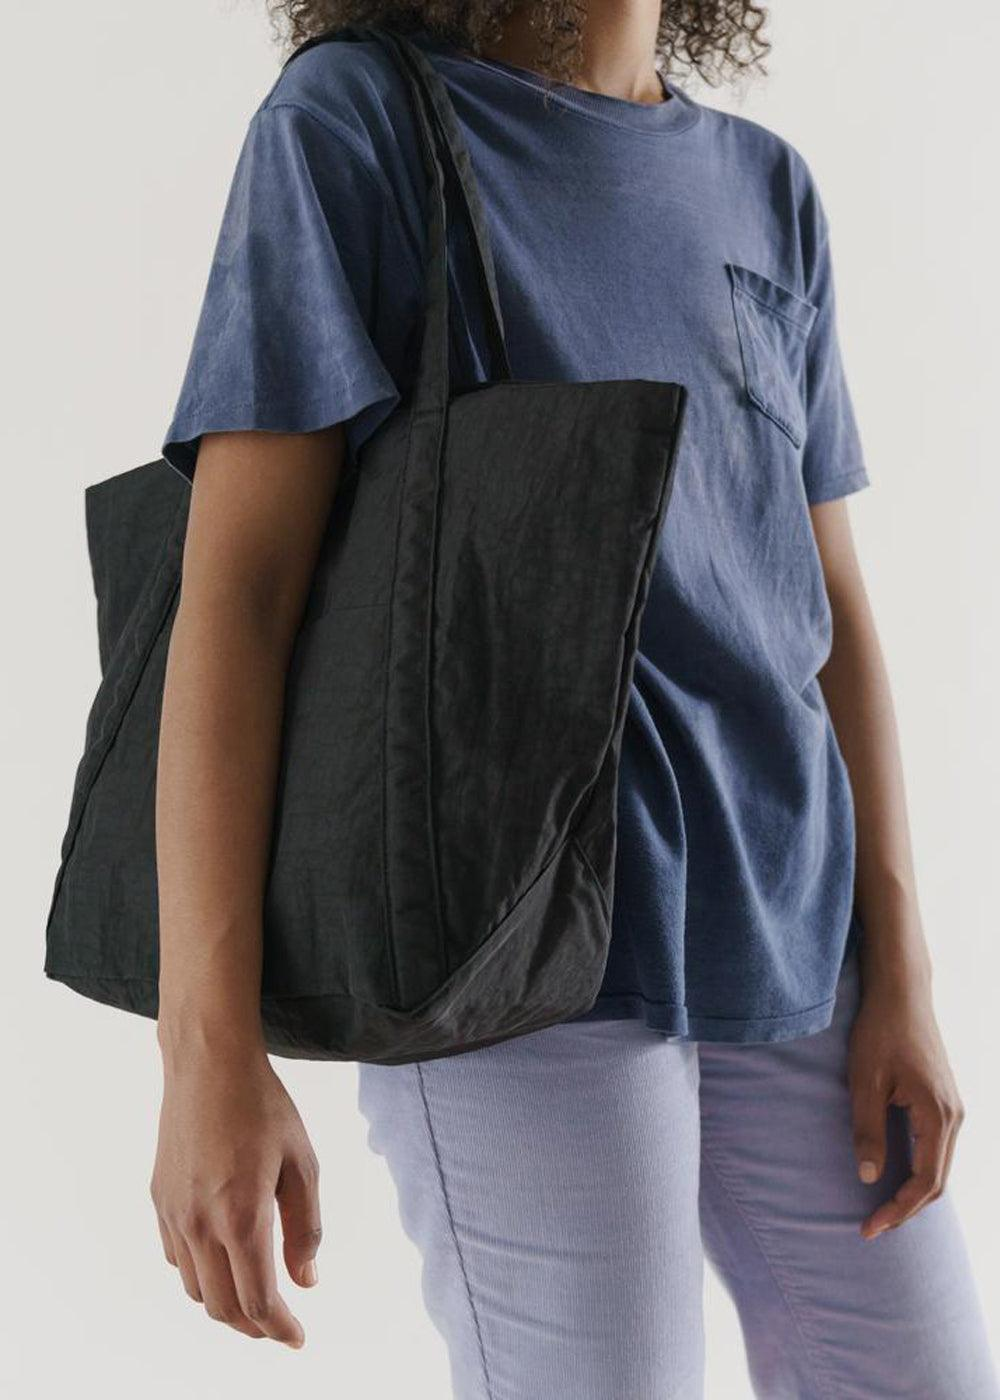 Cloud Bag - Black